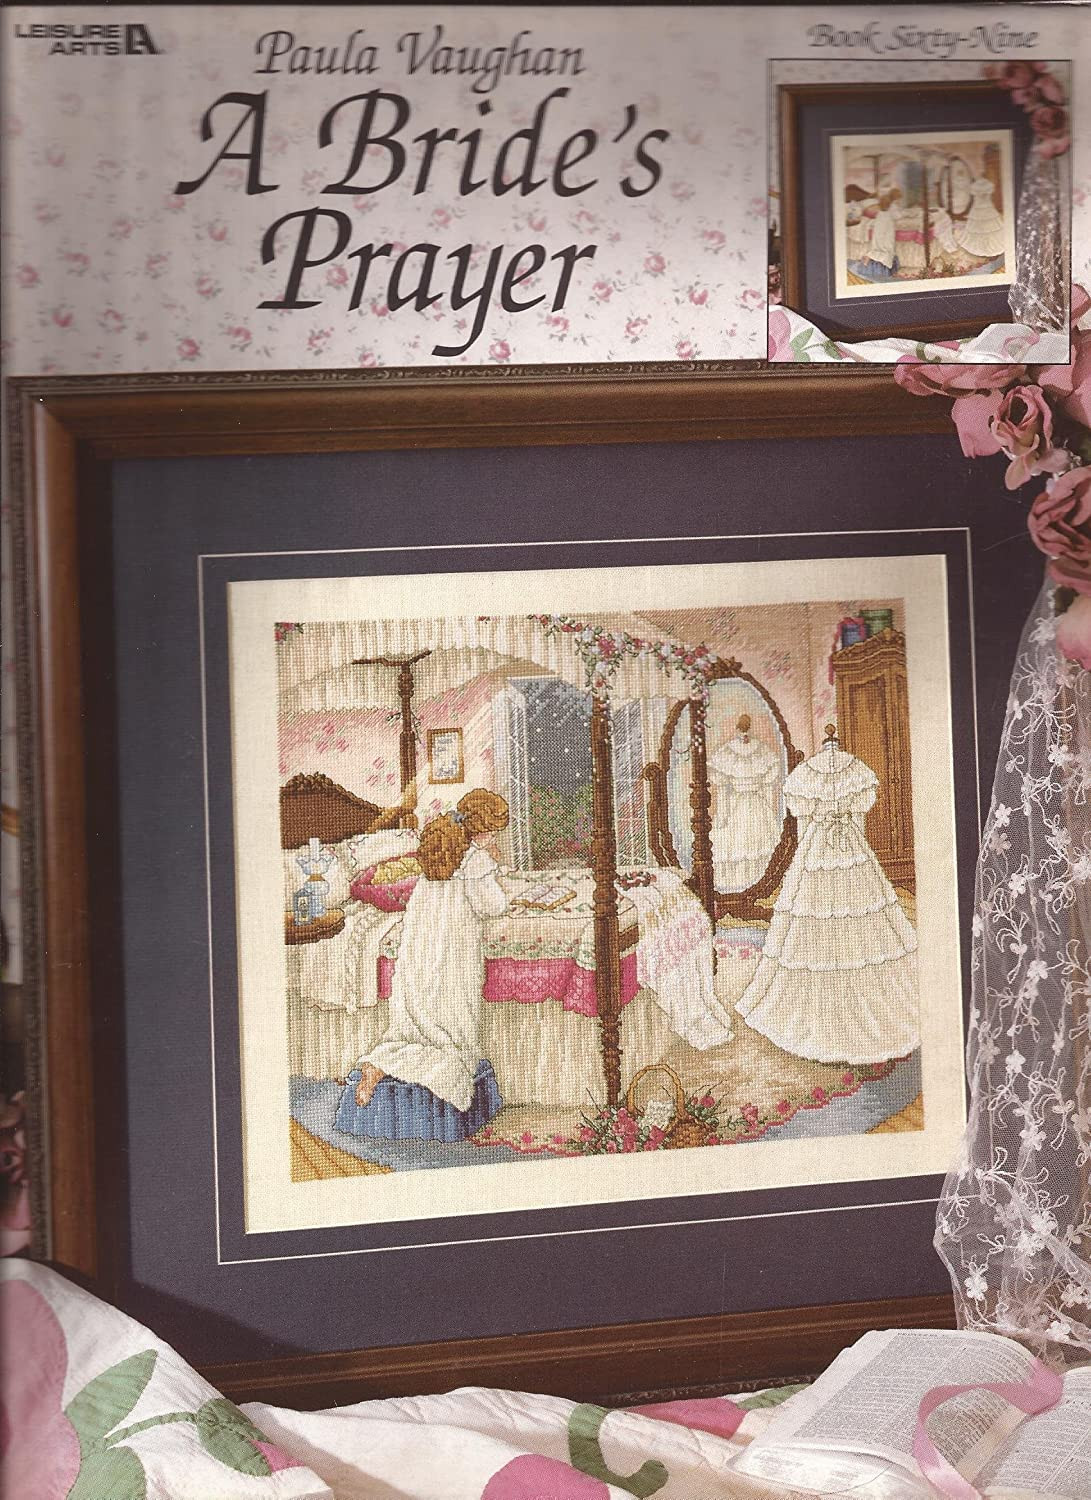 Amazon.com: A Brides Prayer - Paula Vaughan Leisure Arts Counted Cross Stitch Leaflet 3113 Book 69